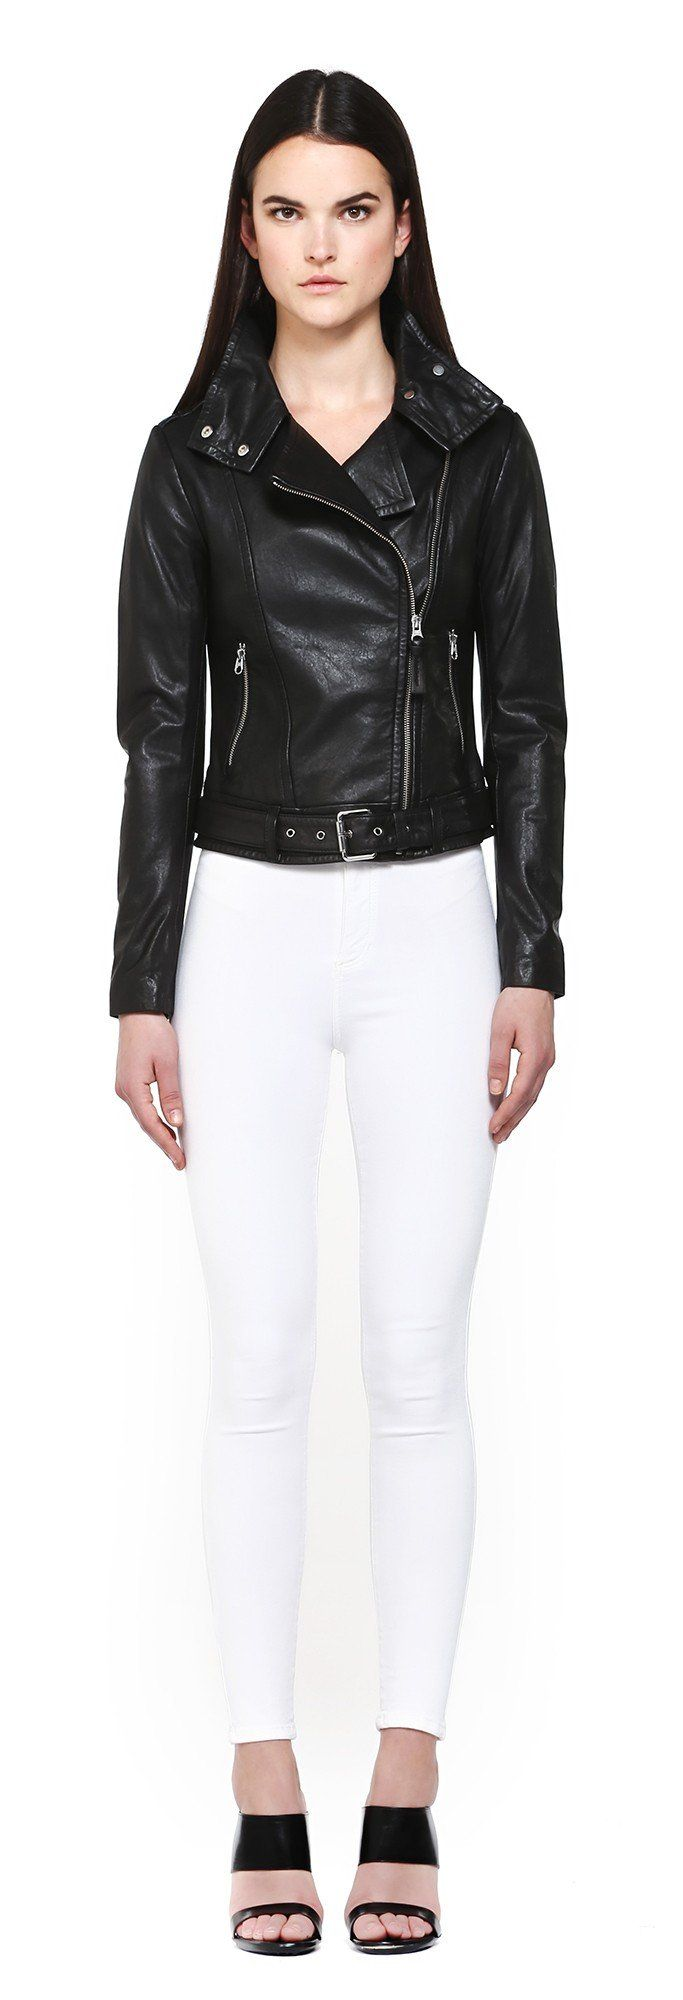 HANIA BLACK WASHED LEATHER JACKET WITH ASYMMETRICAL FRONT ZIPPER   FOR WOMEN   Mackage